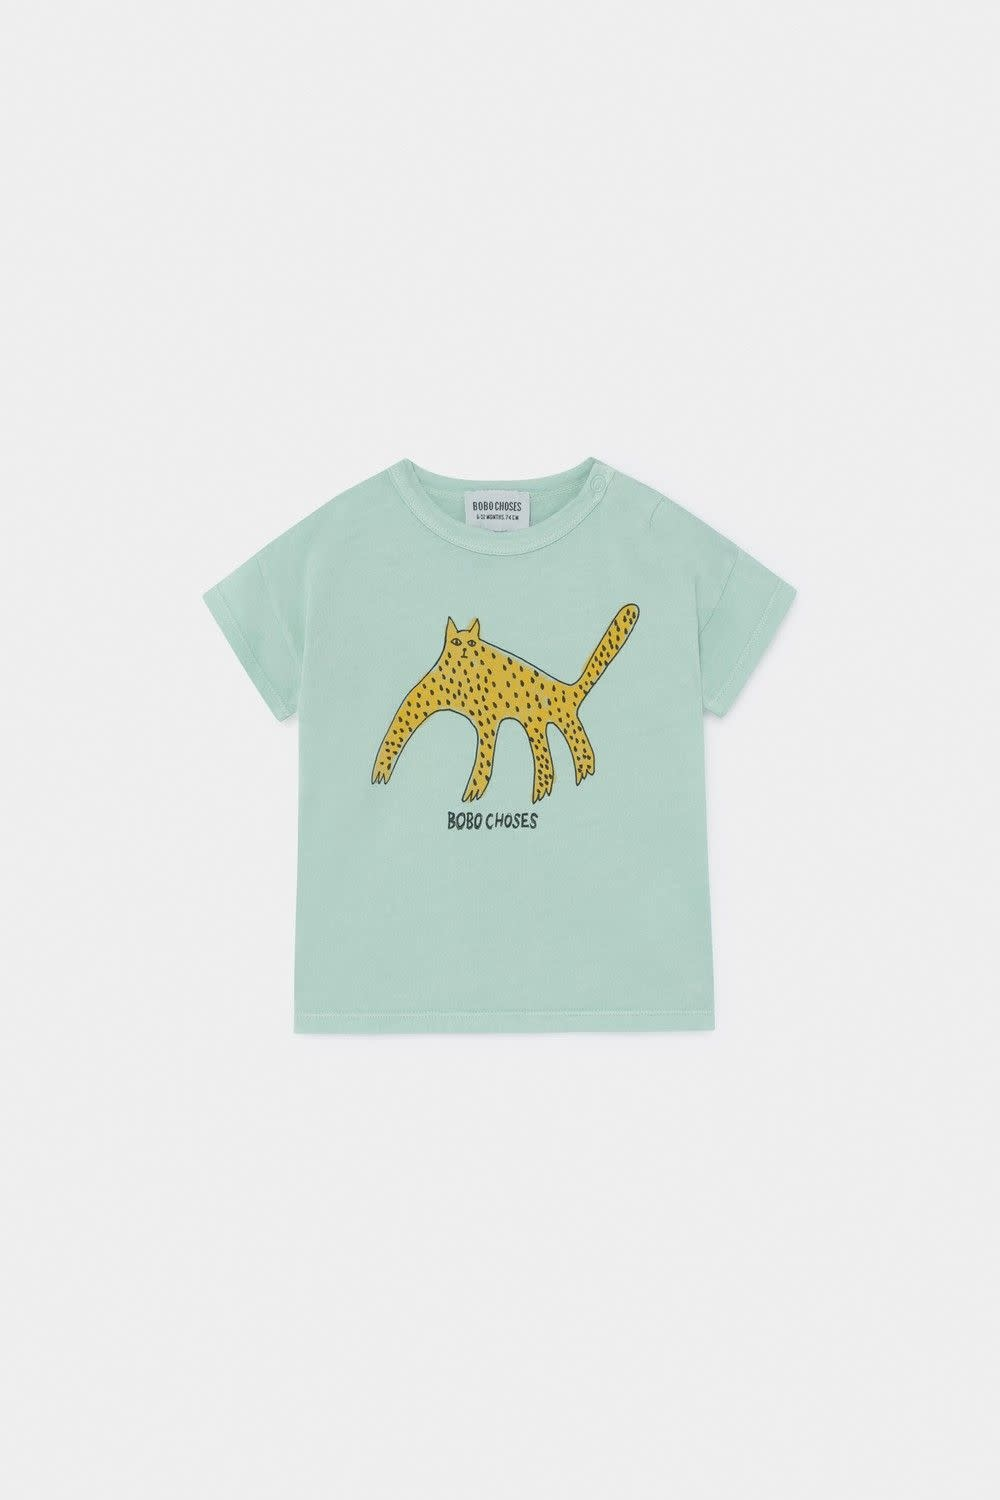 BOBO CHOSES Leopard Tee Shirt